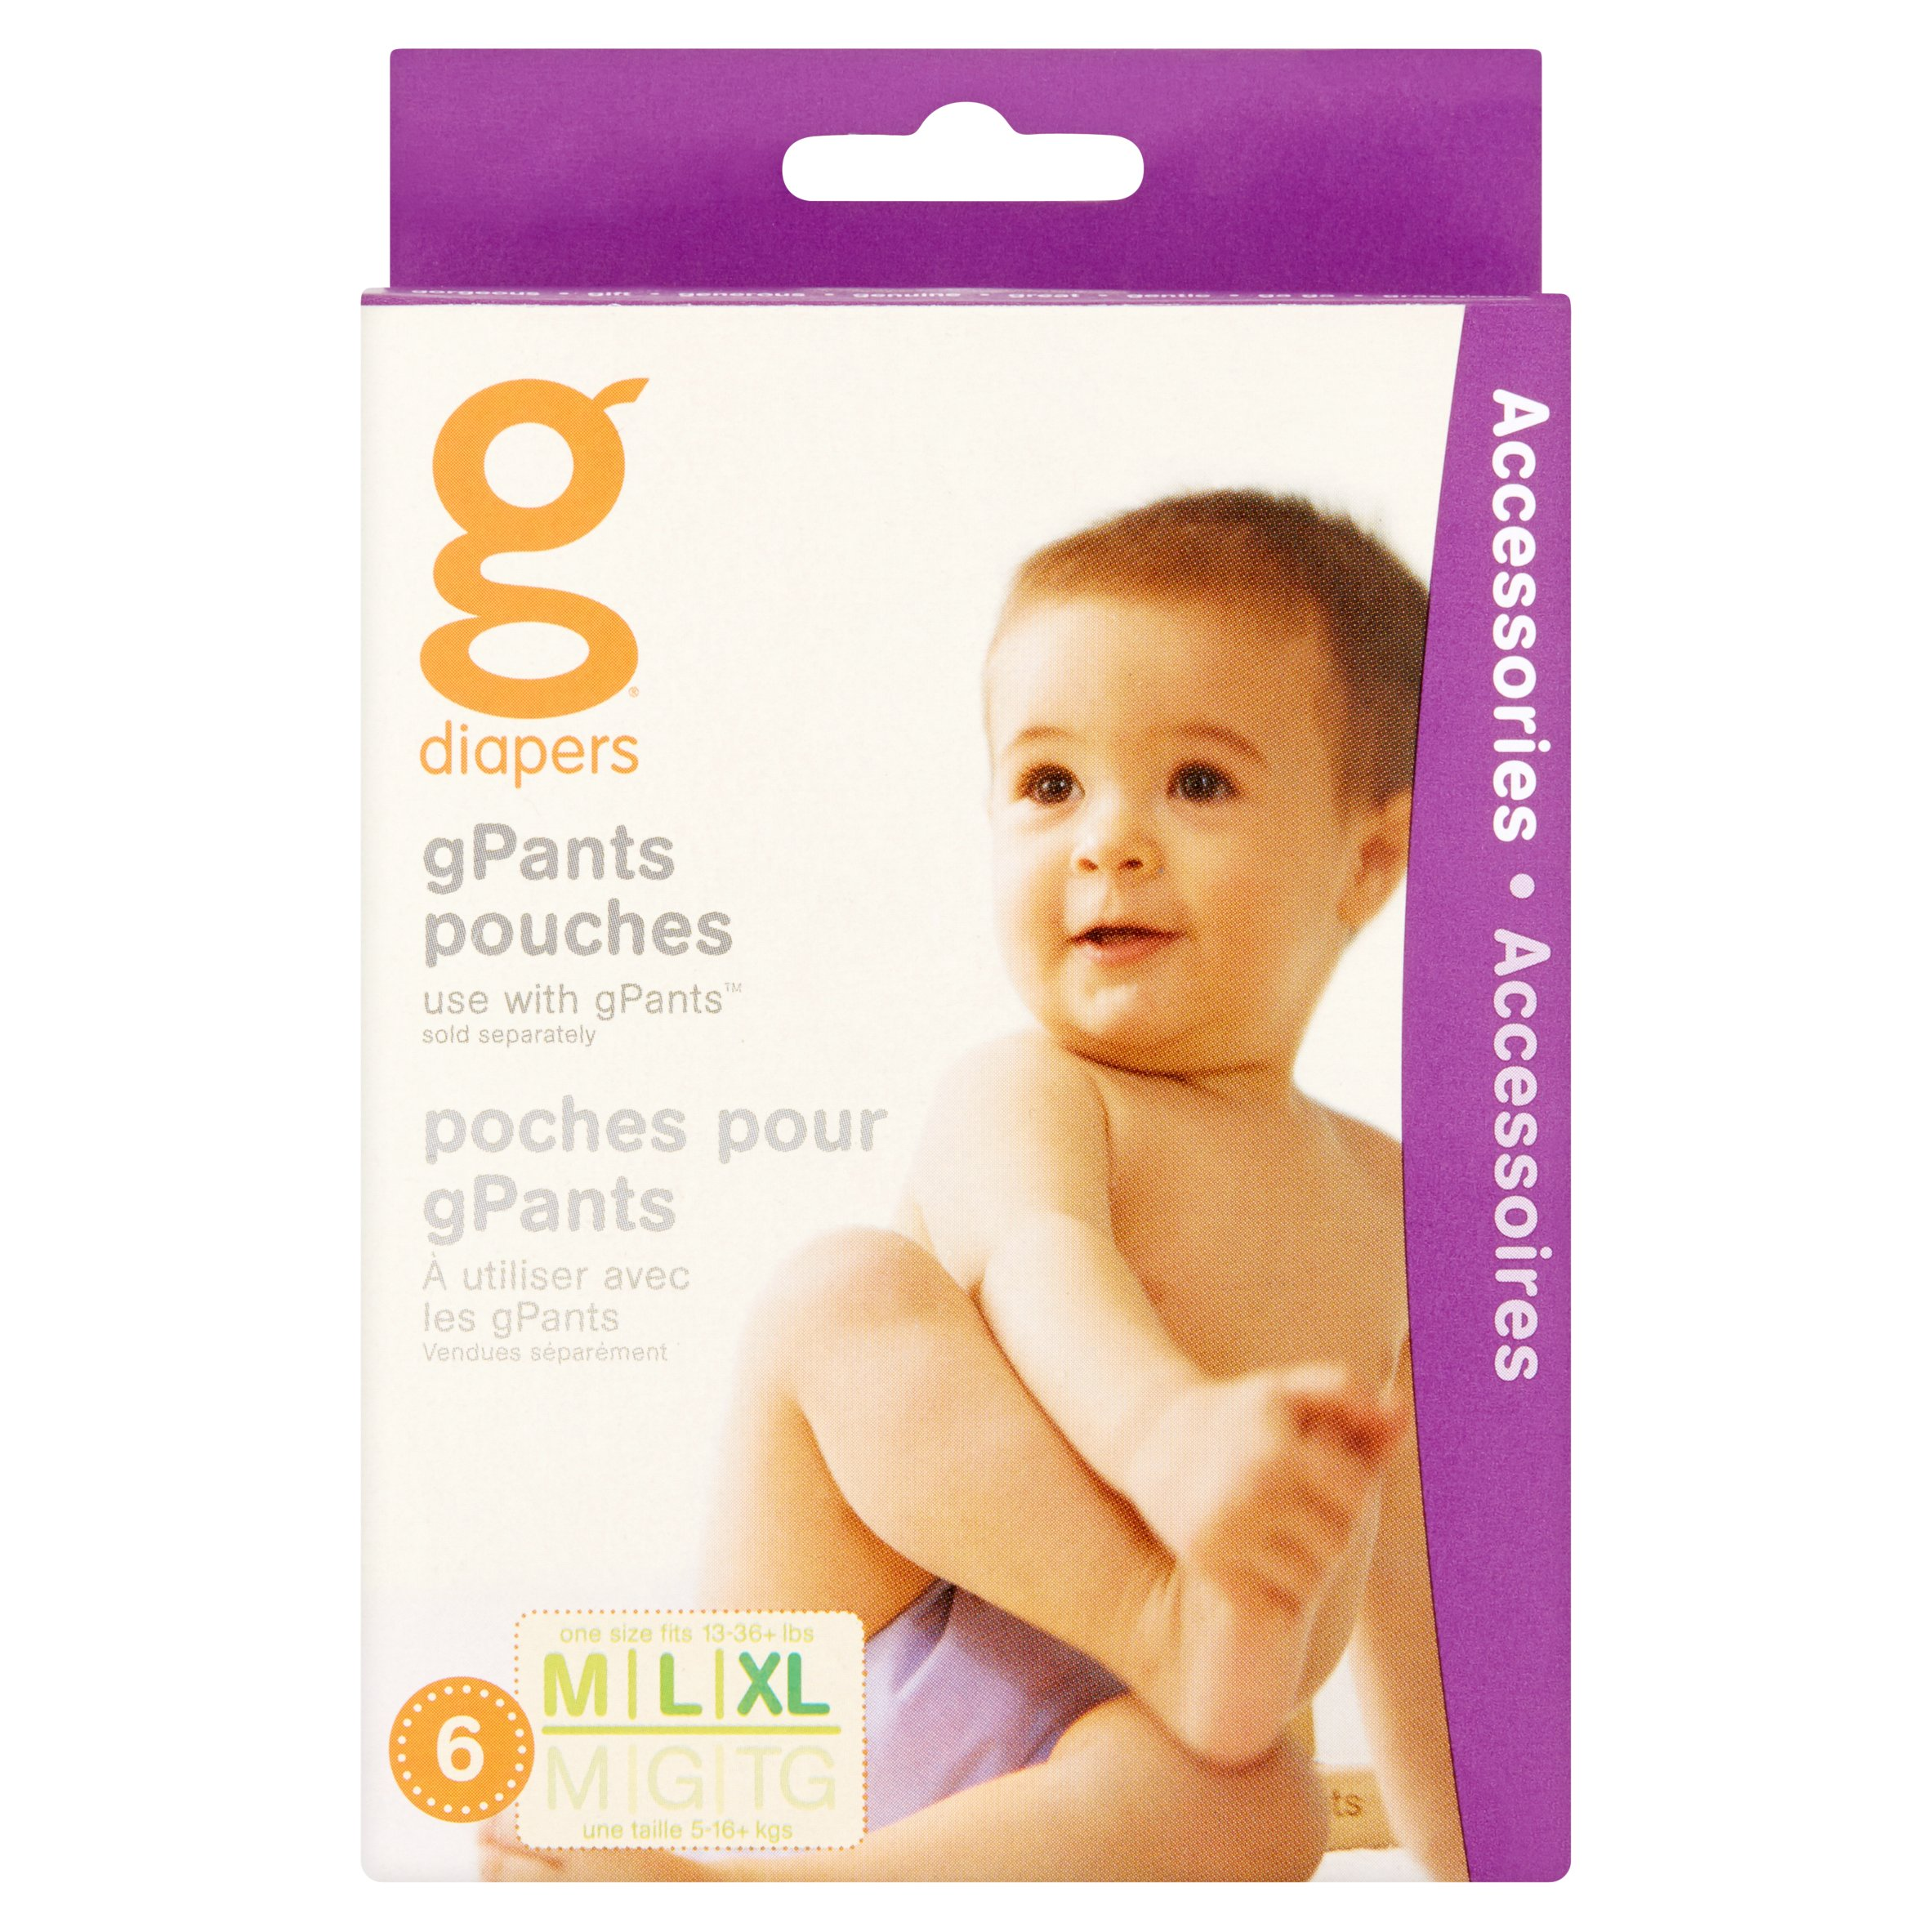 gDiapers Accessories gPants Pouches Med-X Large, 13-36+ lbs, 6 count